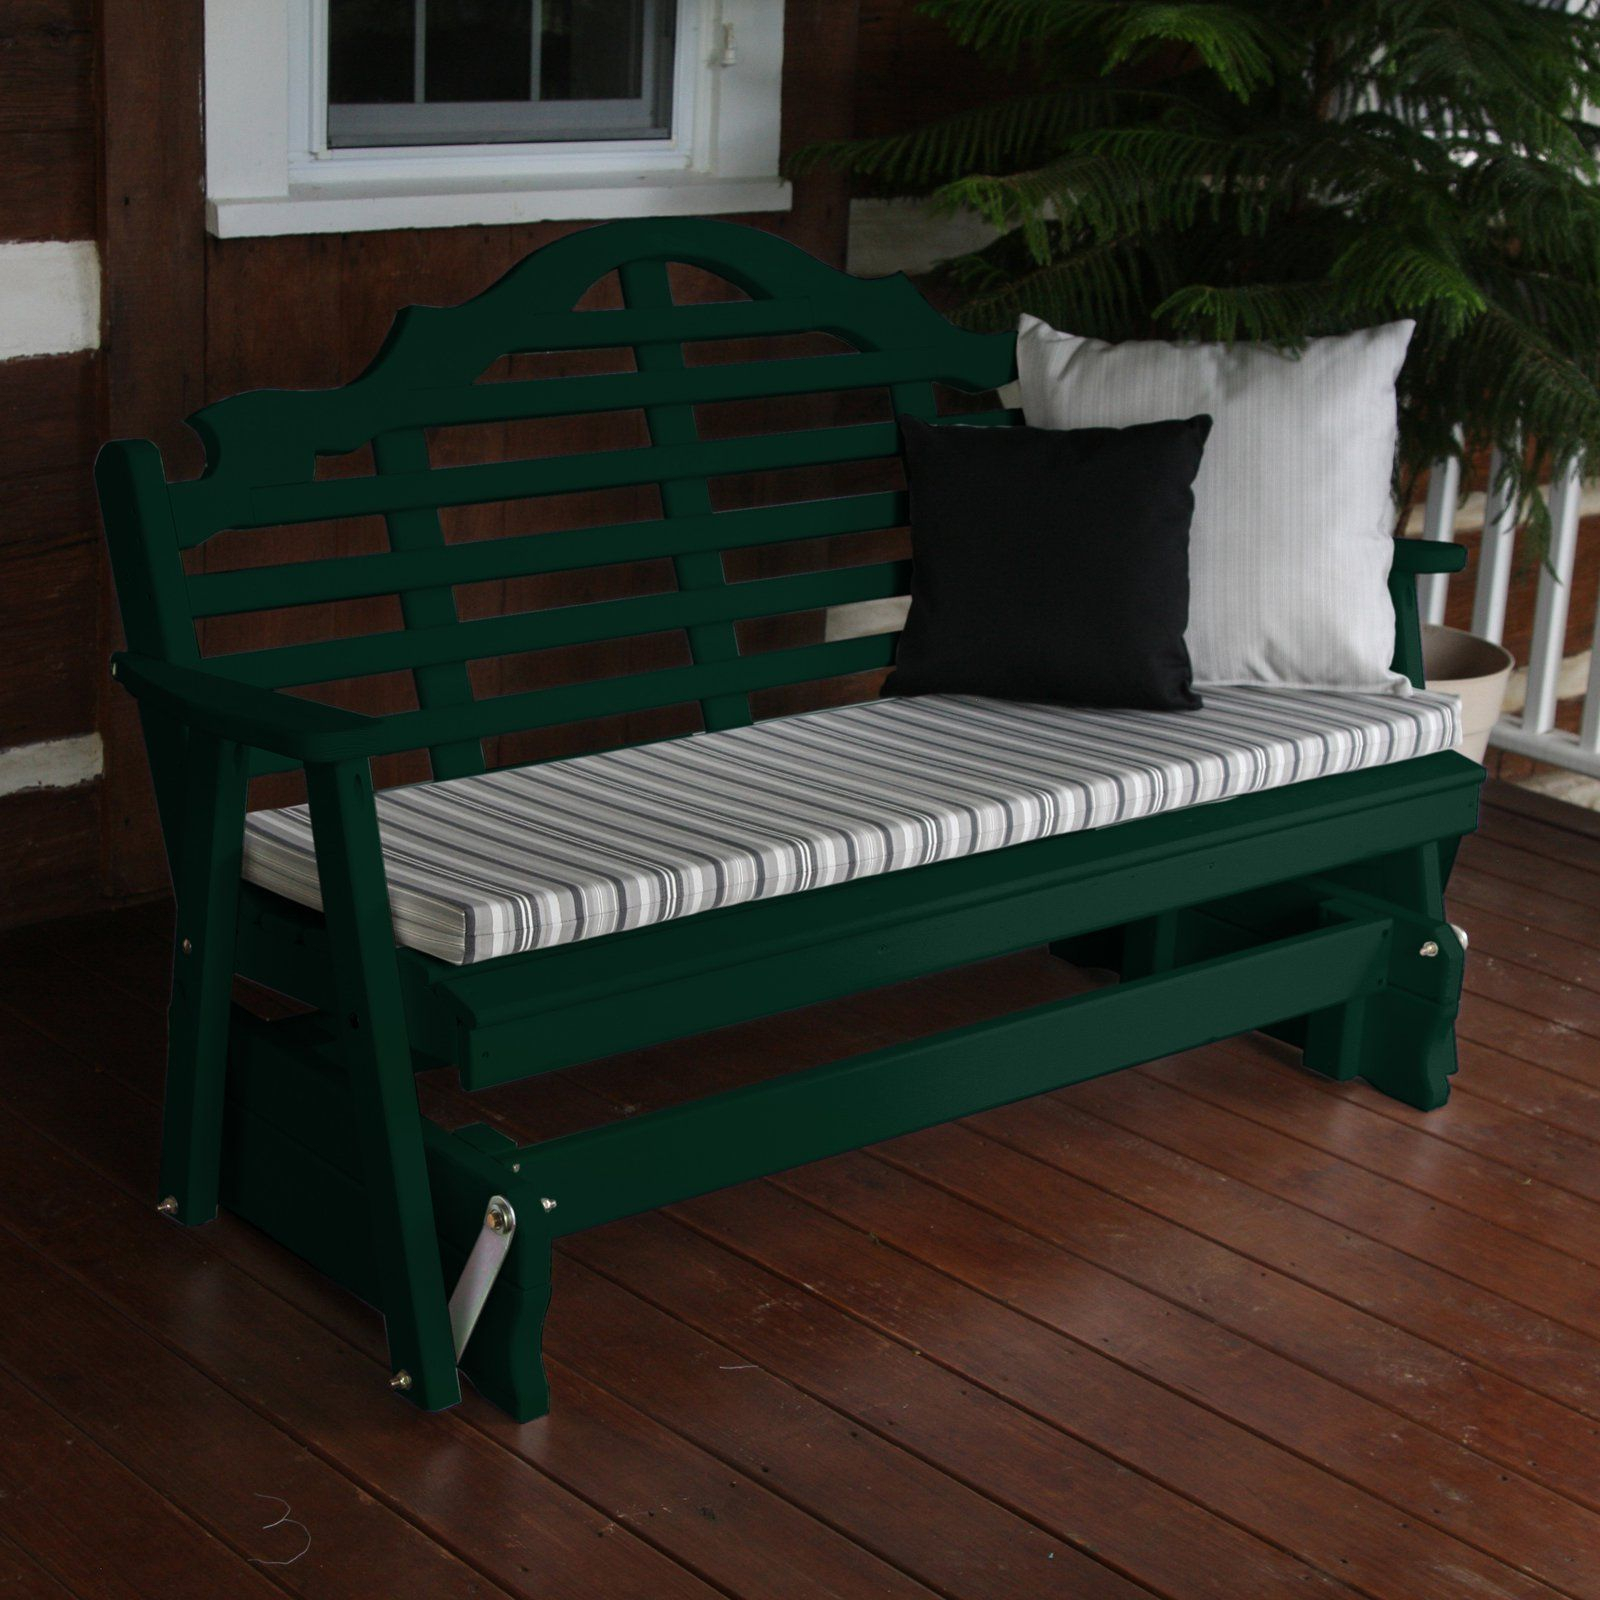 A & L Furniture Yellow Pine Marlboro Outdoor Bench Glider Intended For Cedar Colonial Style Glider Benches (View 2 of 25)